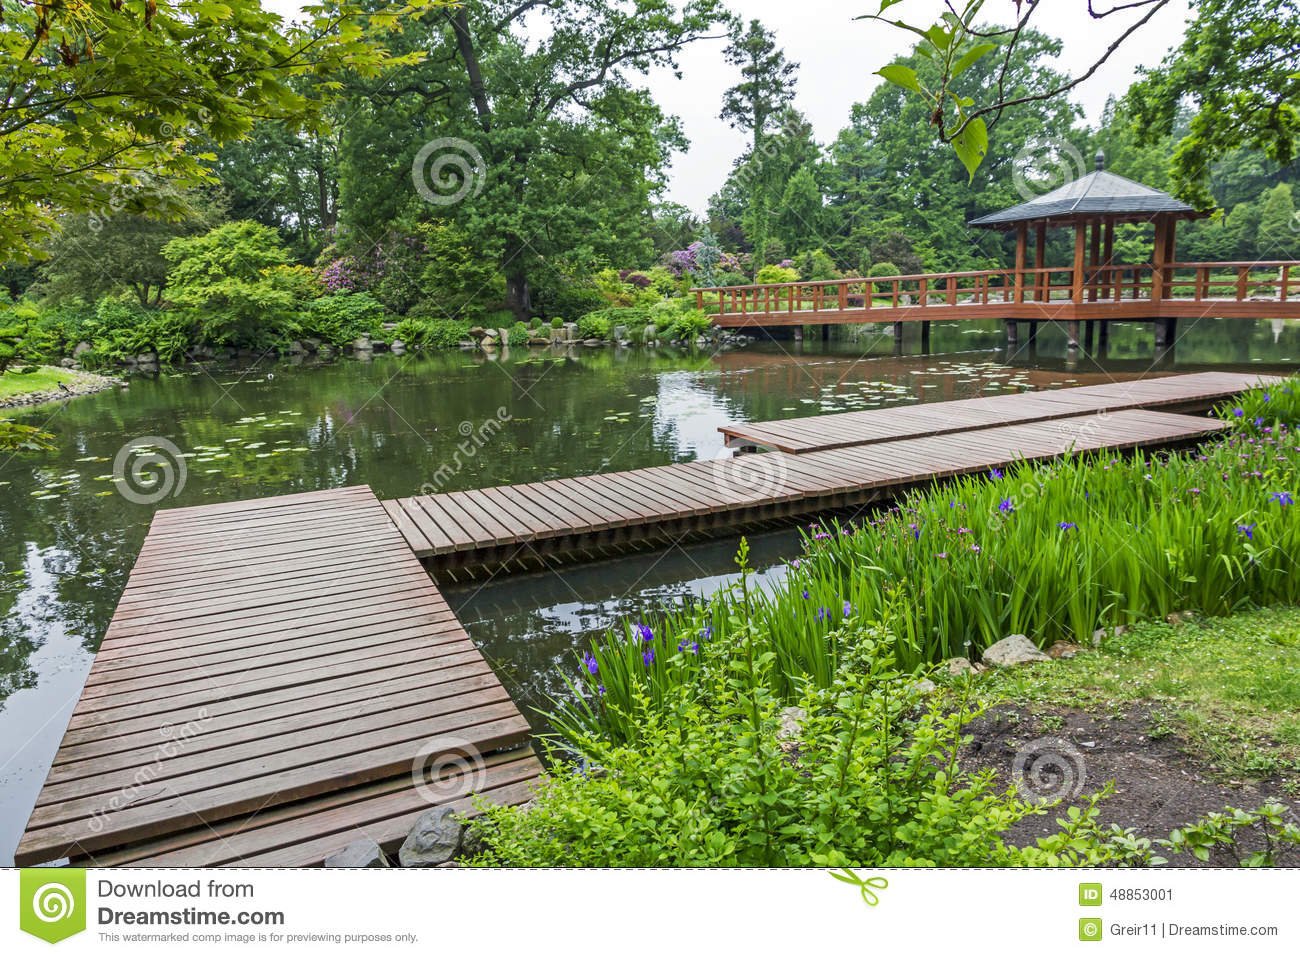 Japanese Garden Plants Wooden Pier And Beautiful Plants In A Japanese Garden Stock Photo